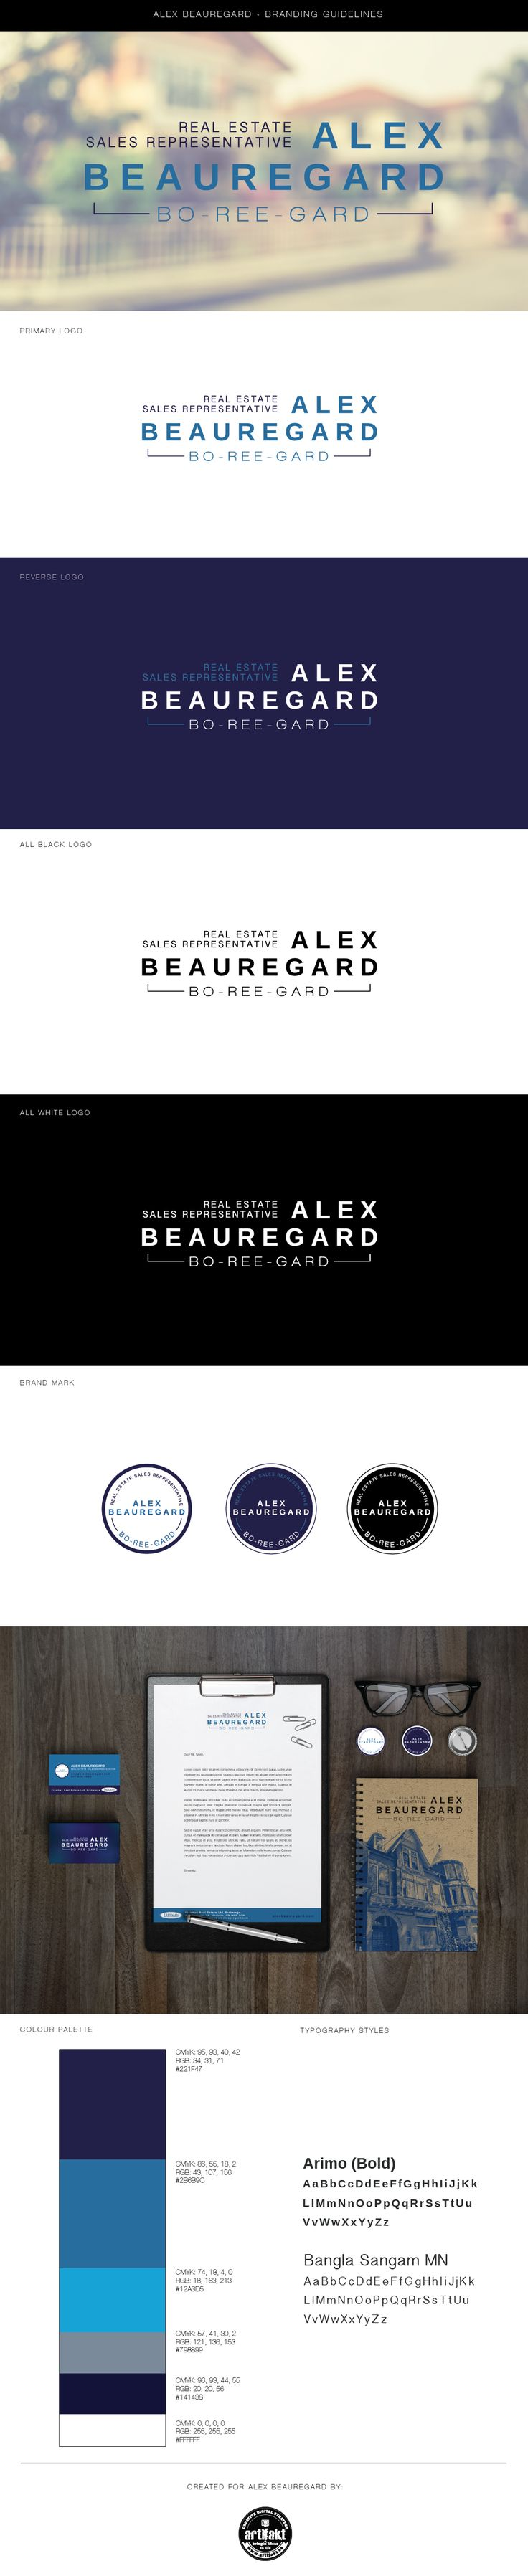 The completed branding guidelines we did for Alex Beauregard.